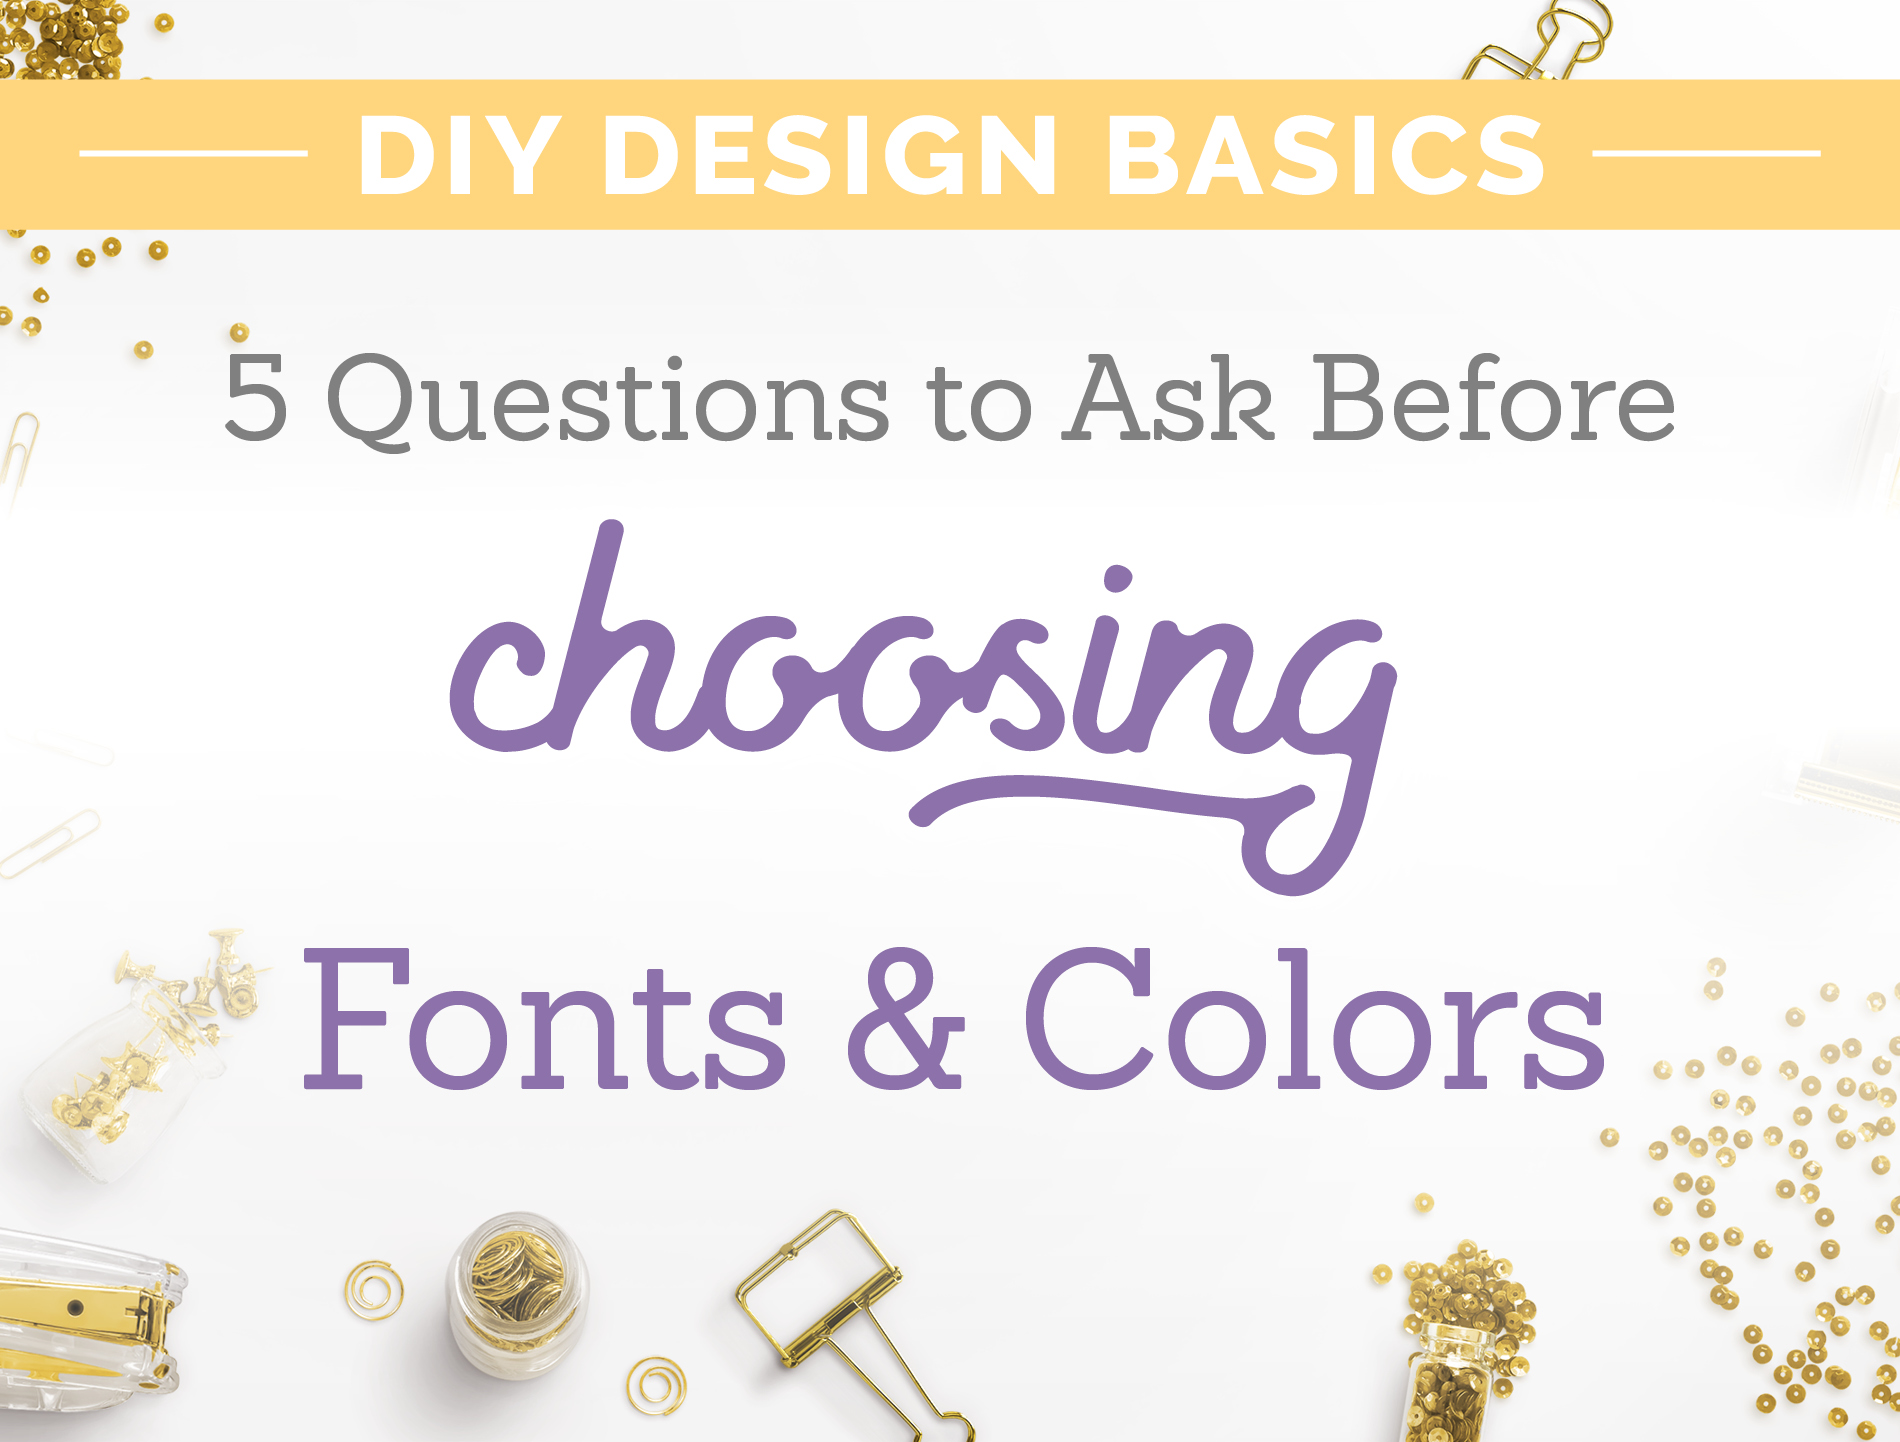 5 questions to ask before choosing fonts and colors